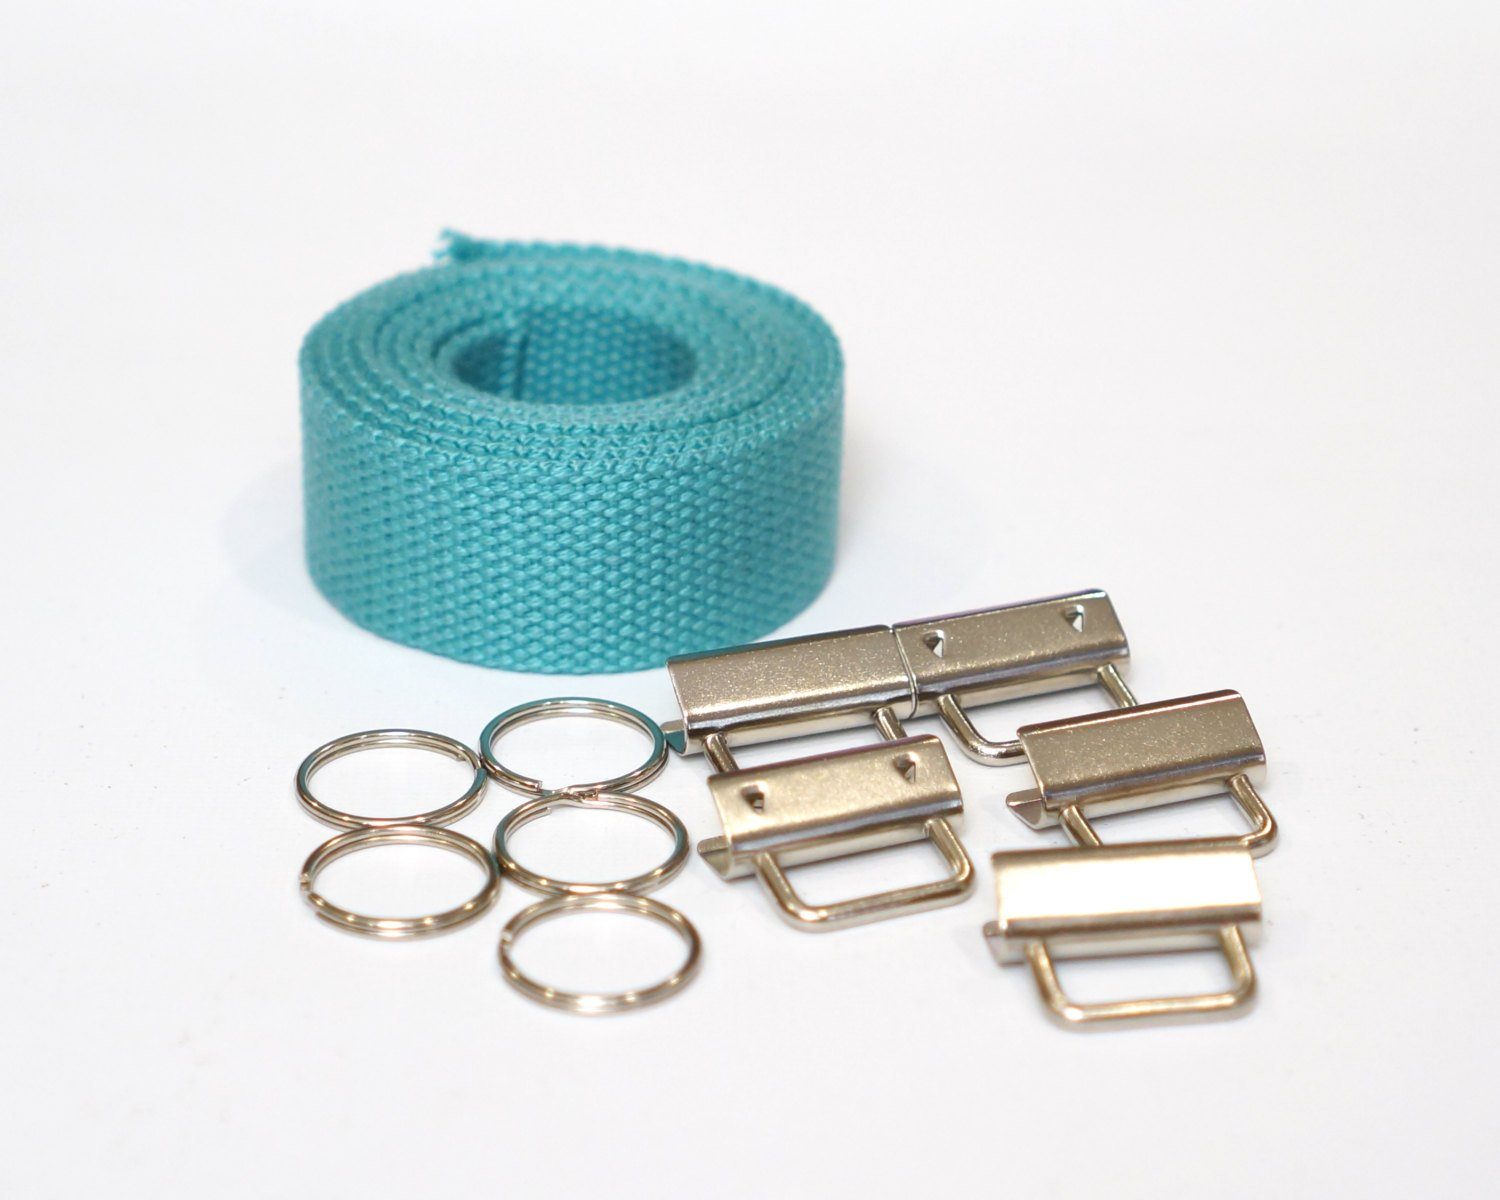 Aqua Wristlet Key Fob Kit - 5 Sets